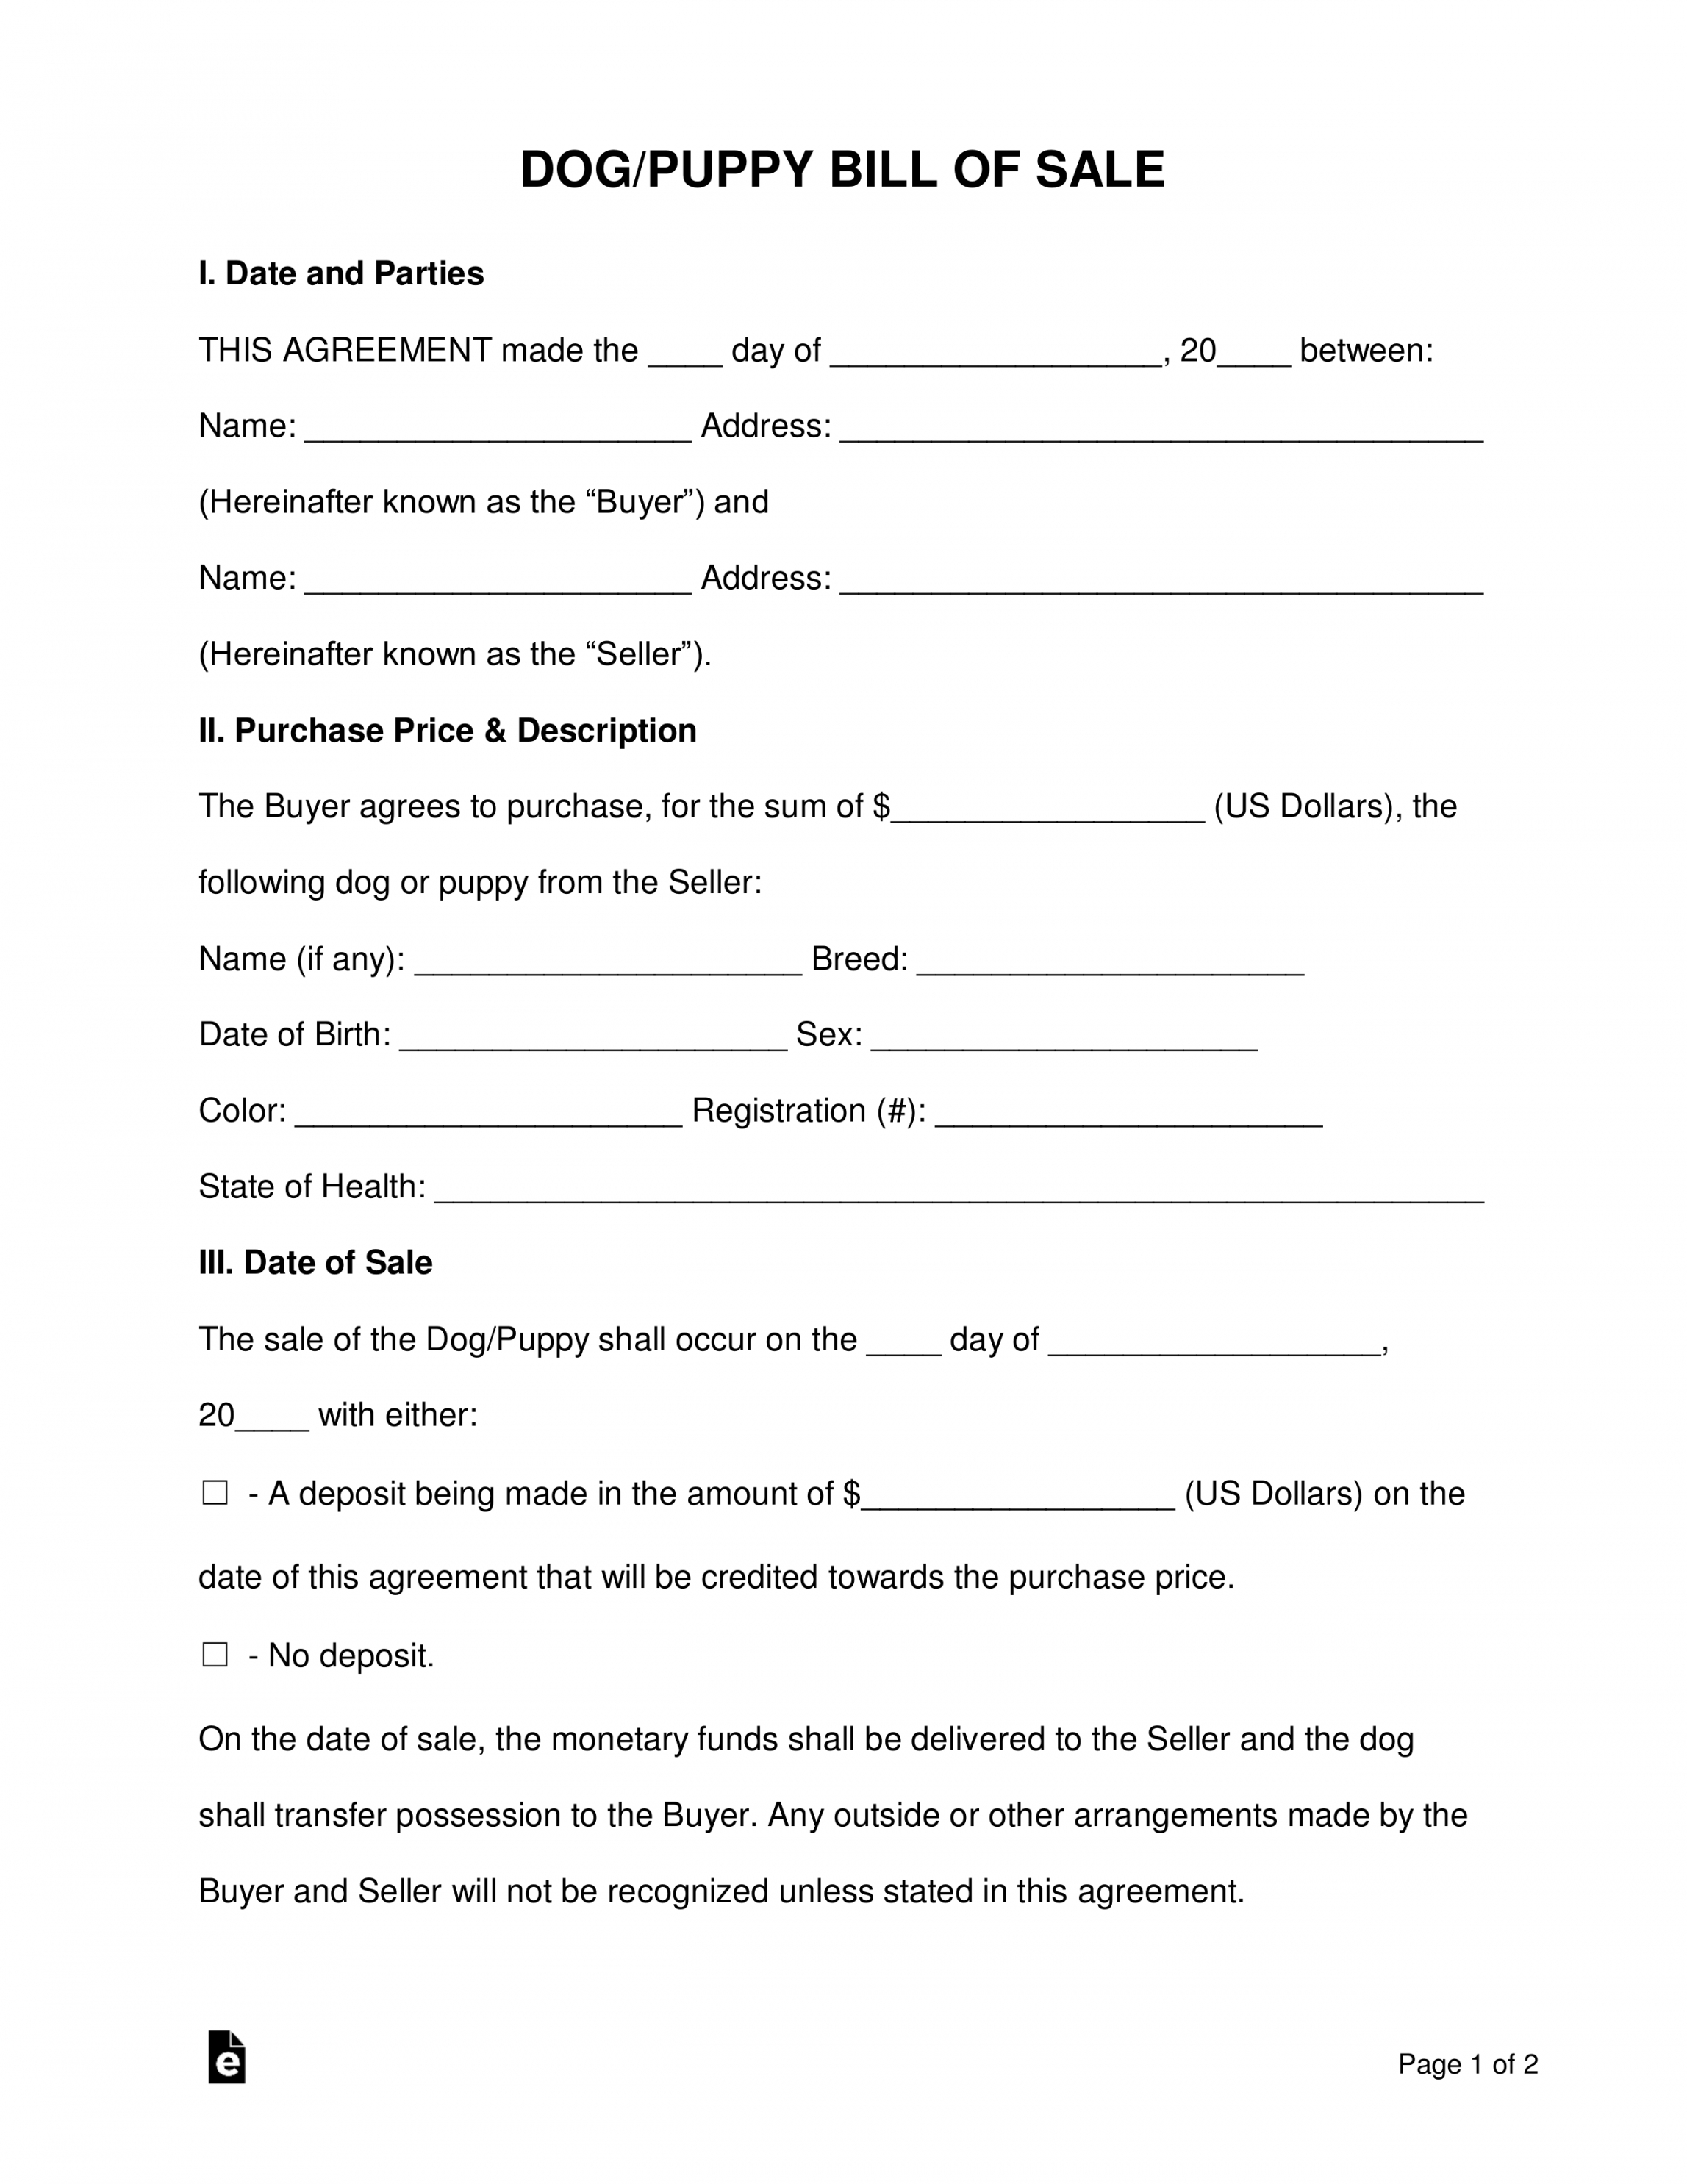 free dogpuppy bill of sale form  word  pdf  eforms puppy deposit contract template sample